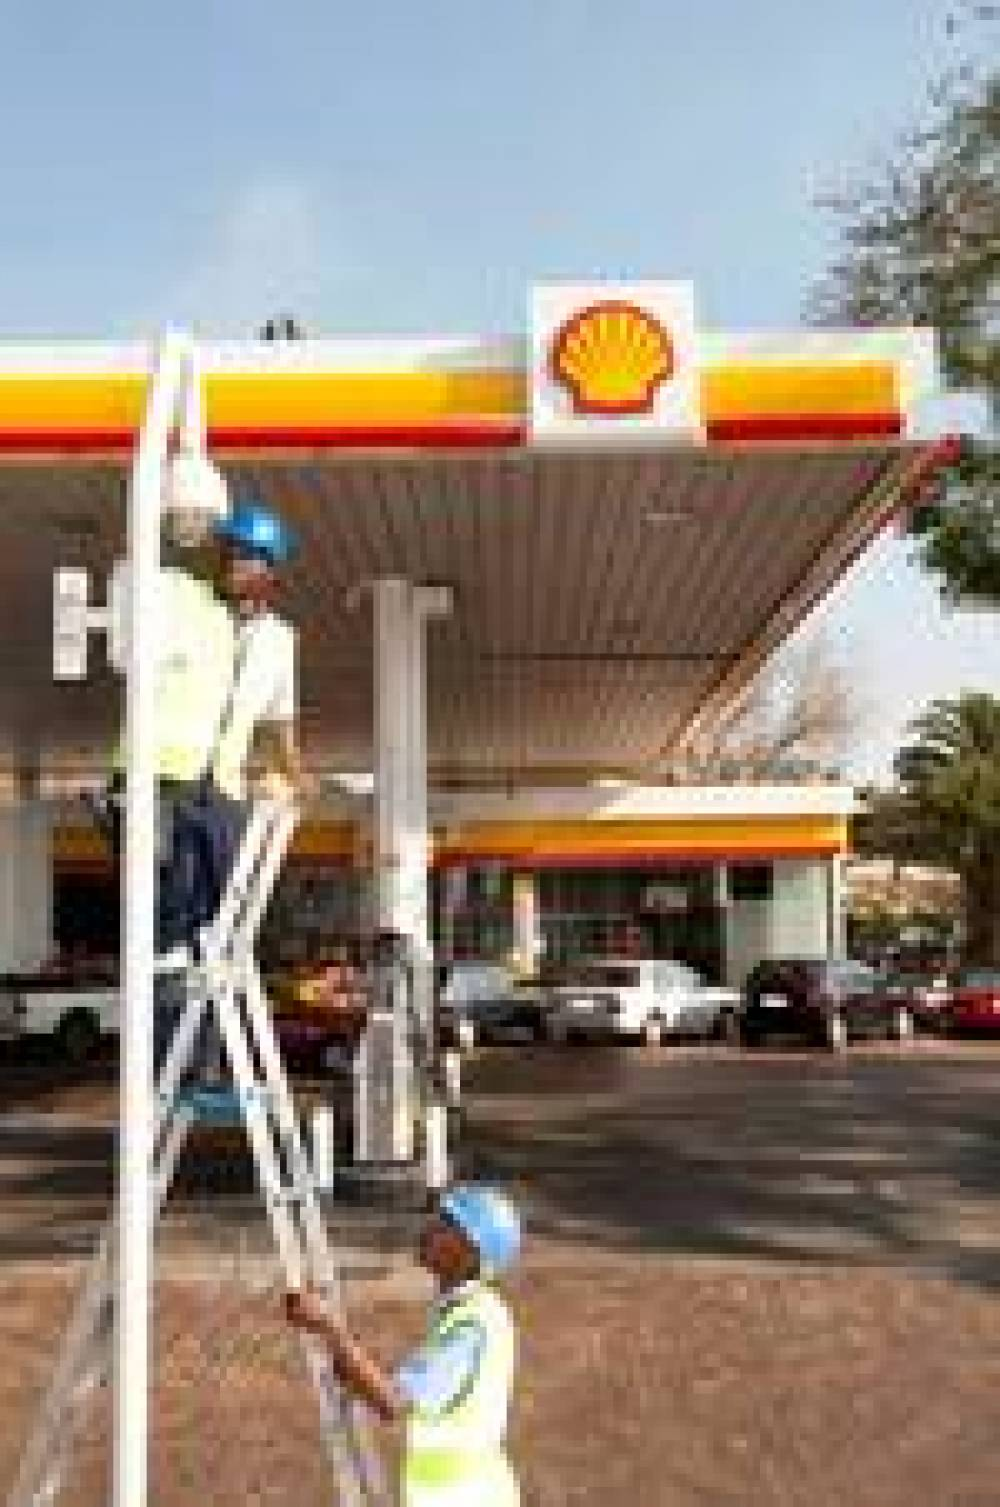 Megapixel Cameras Provide Panoramic Coverage at Shell Petrol Station